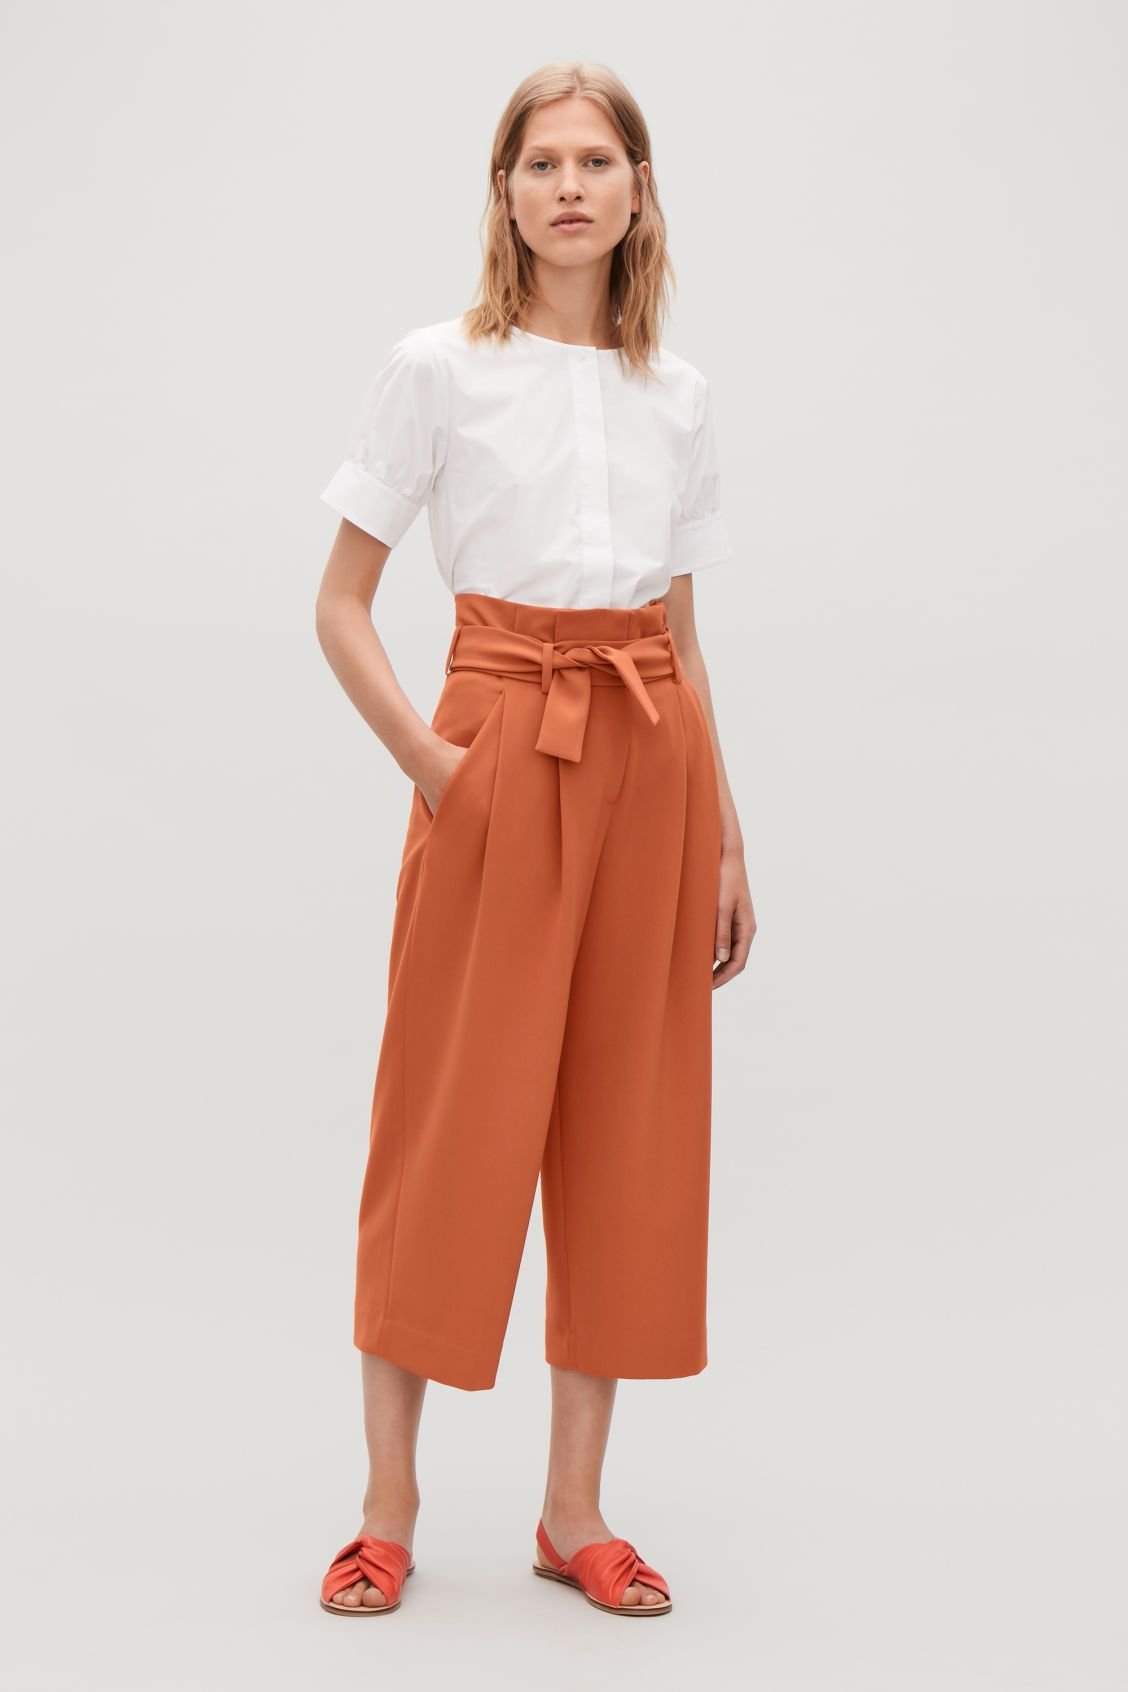 b7cfe65b6dbe BELTED HIGH-WAIST TROUSERS - Rust - Wide-leg trousers - COS US ...